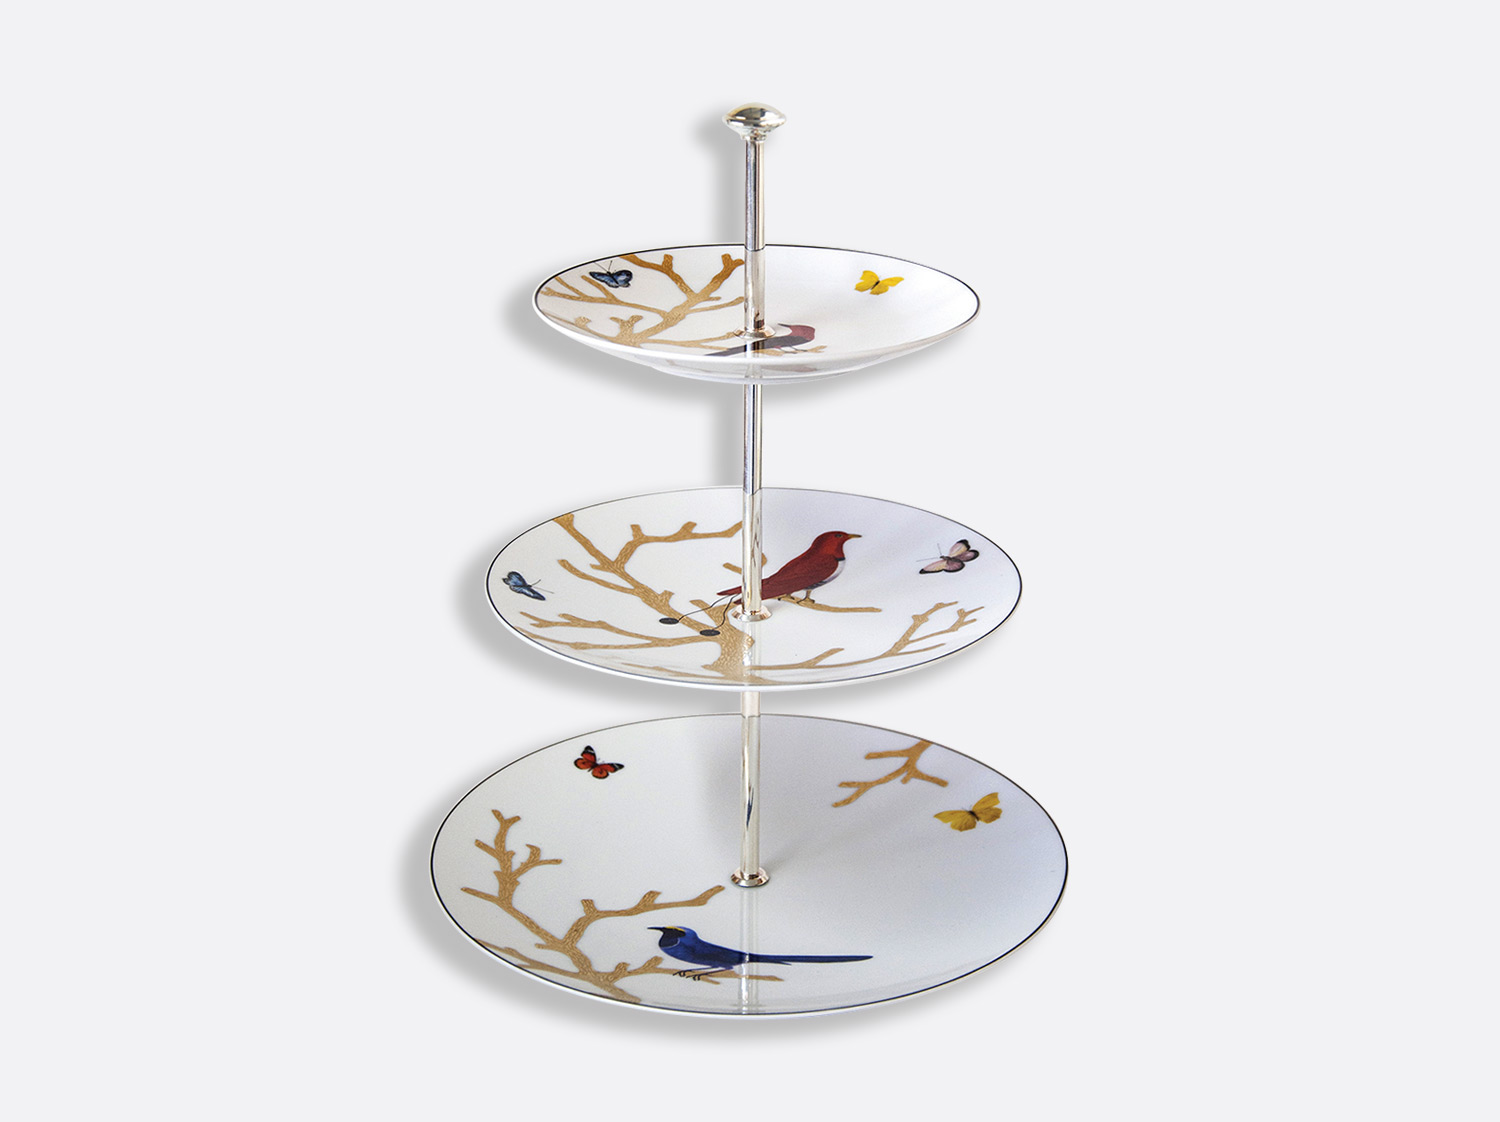 China 3 tier tray of the collection Aux oiseaux | Bernardaud